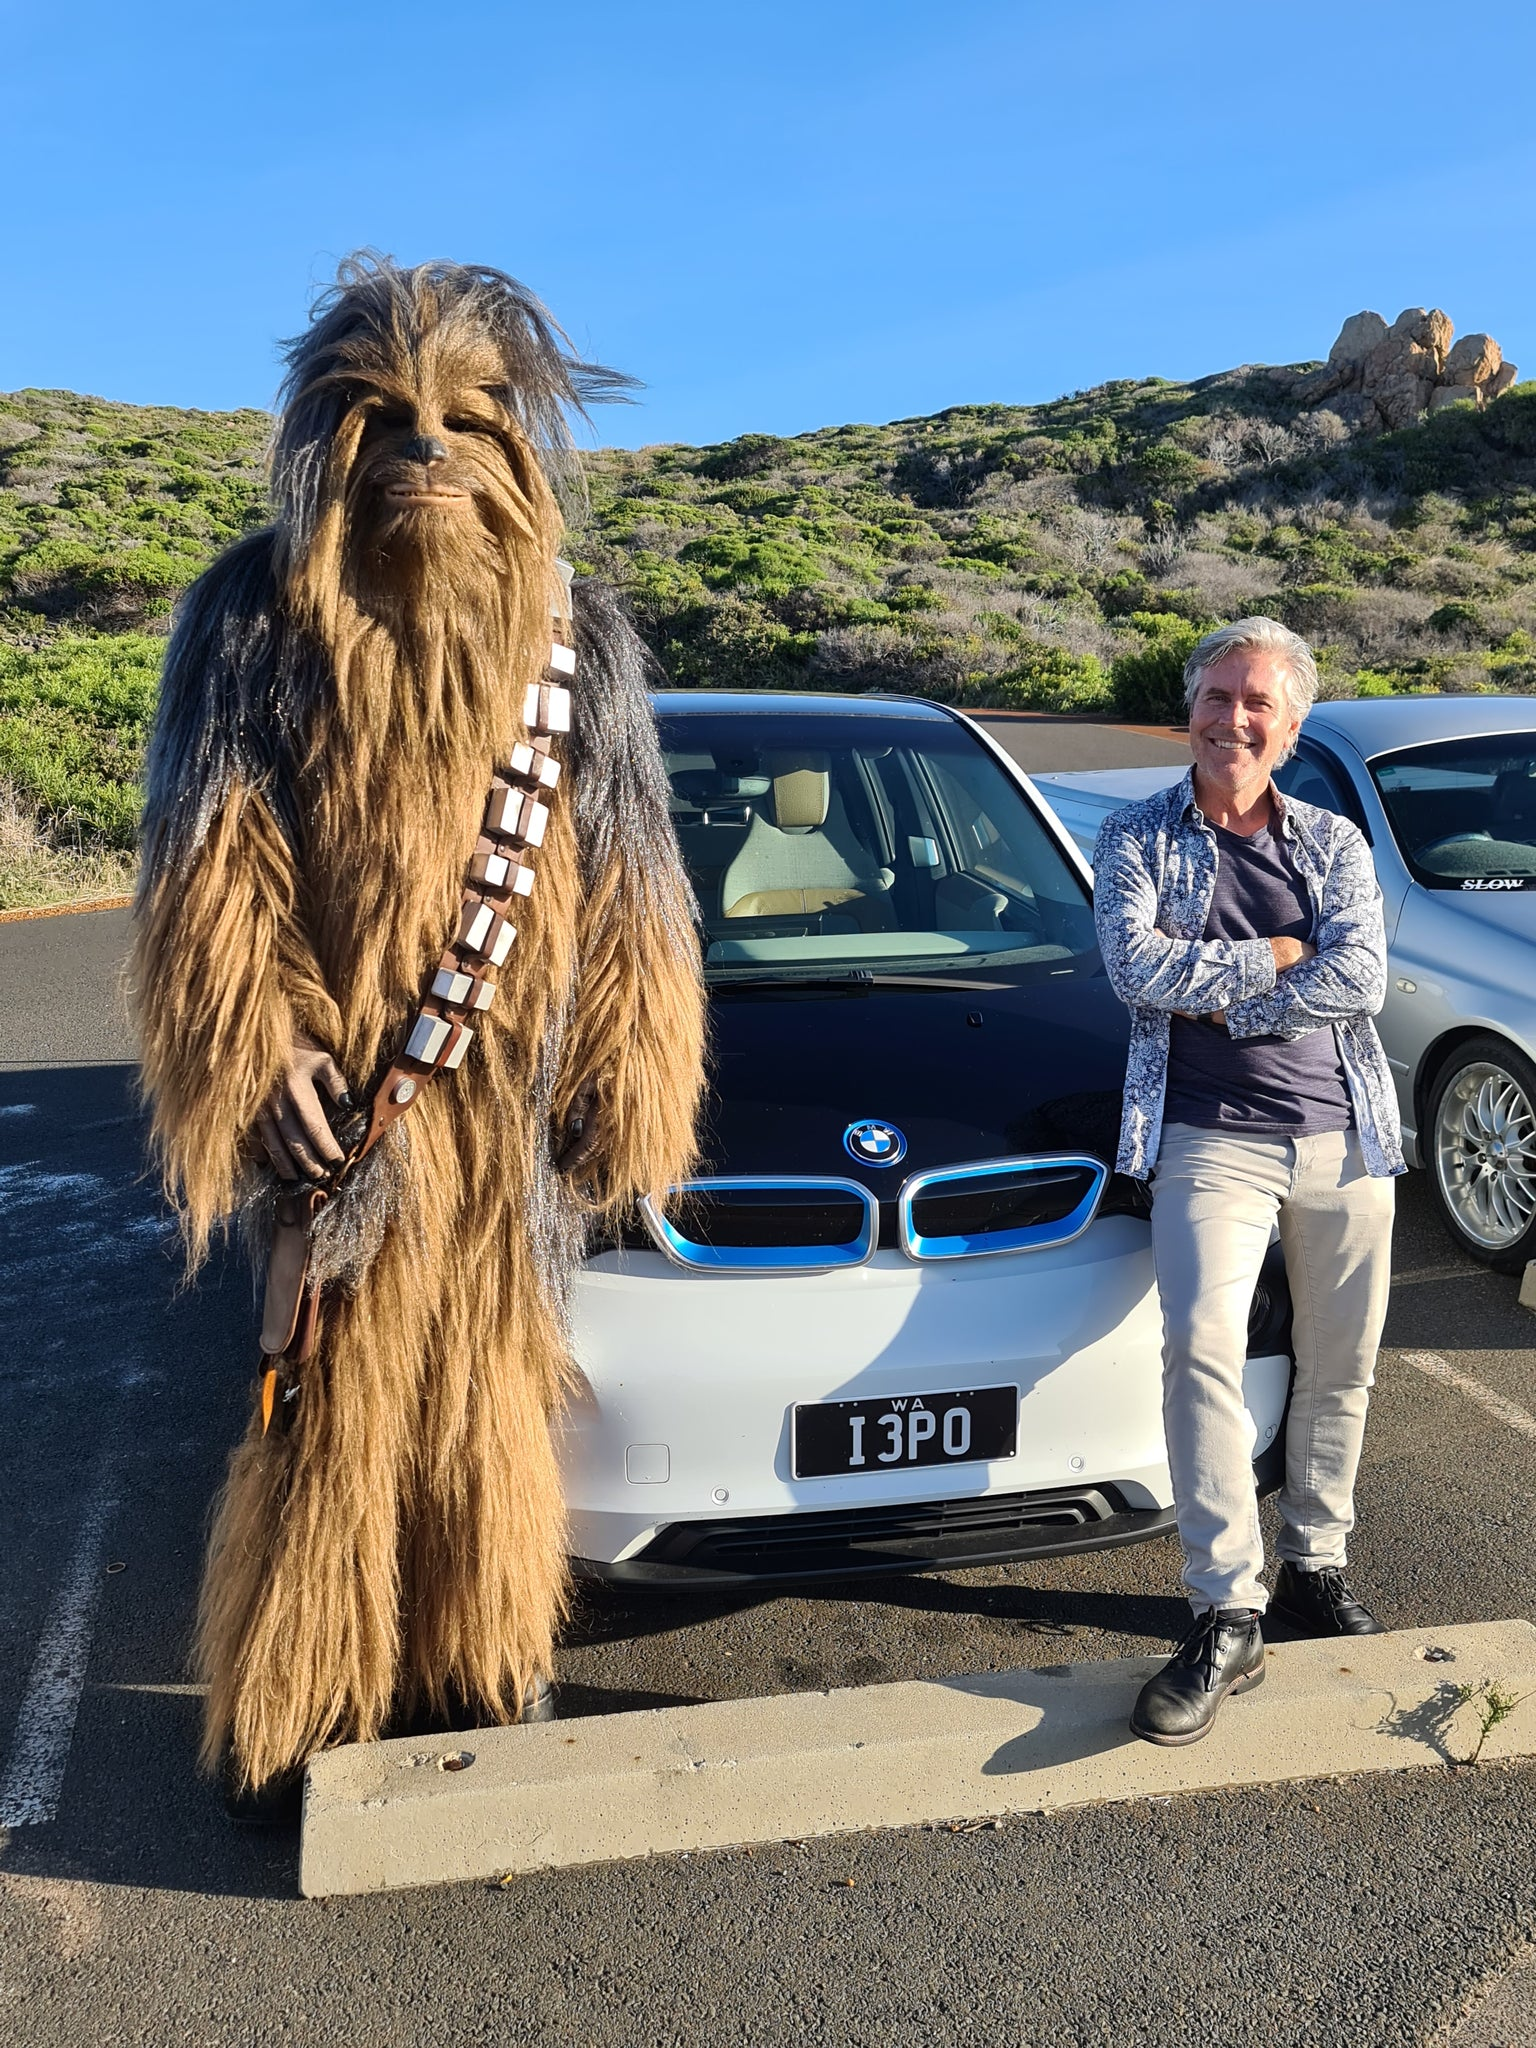 Christian Fletcher and Chewbacca standing in front of a BMW i3 at Sugarloaf Rock in Western Australia